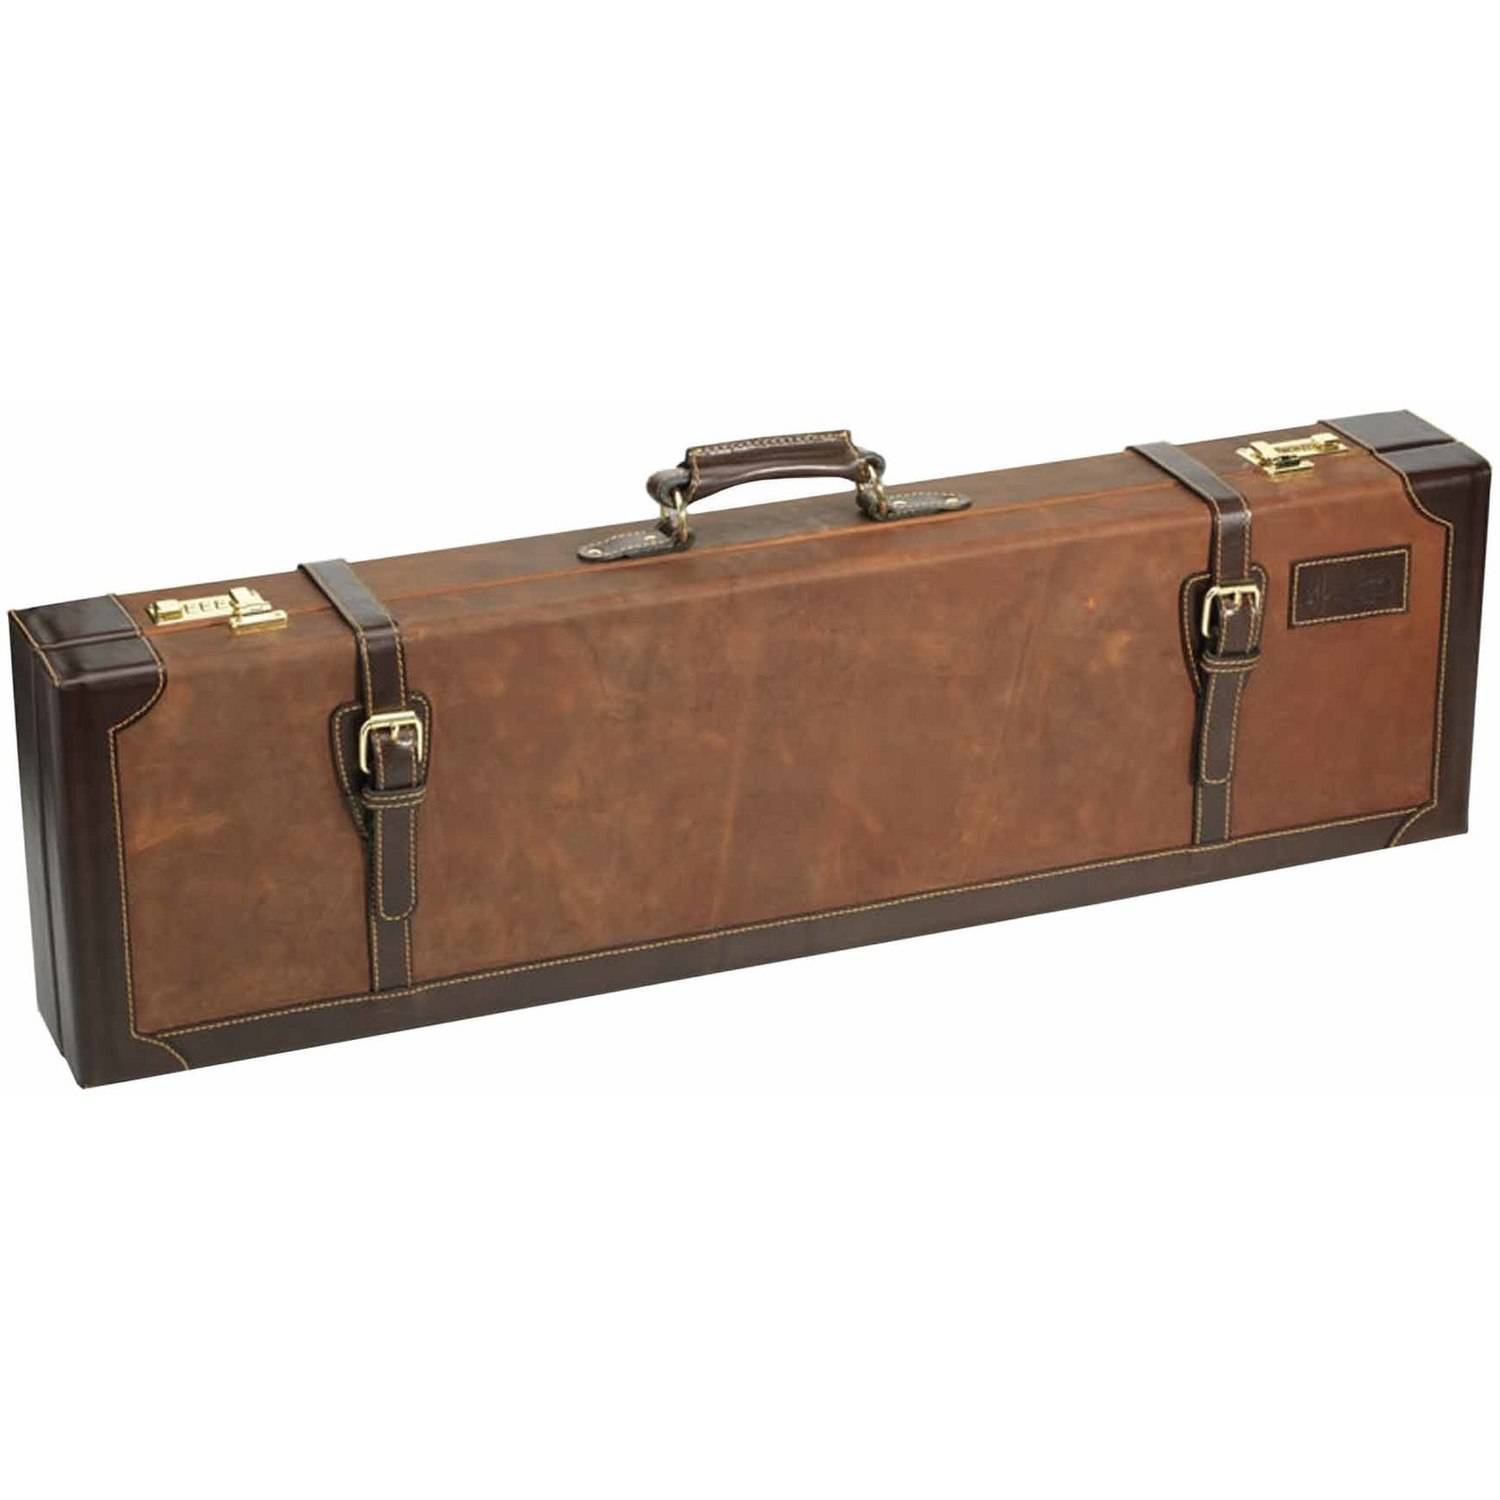 Browning John M. Browning Crazy Horse Leather Brown Fitted Gun Case